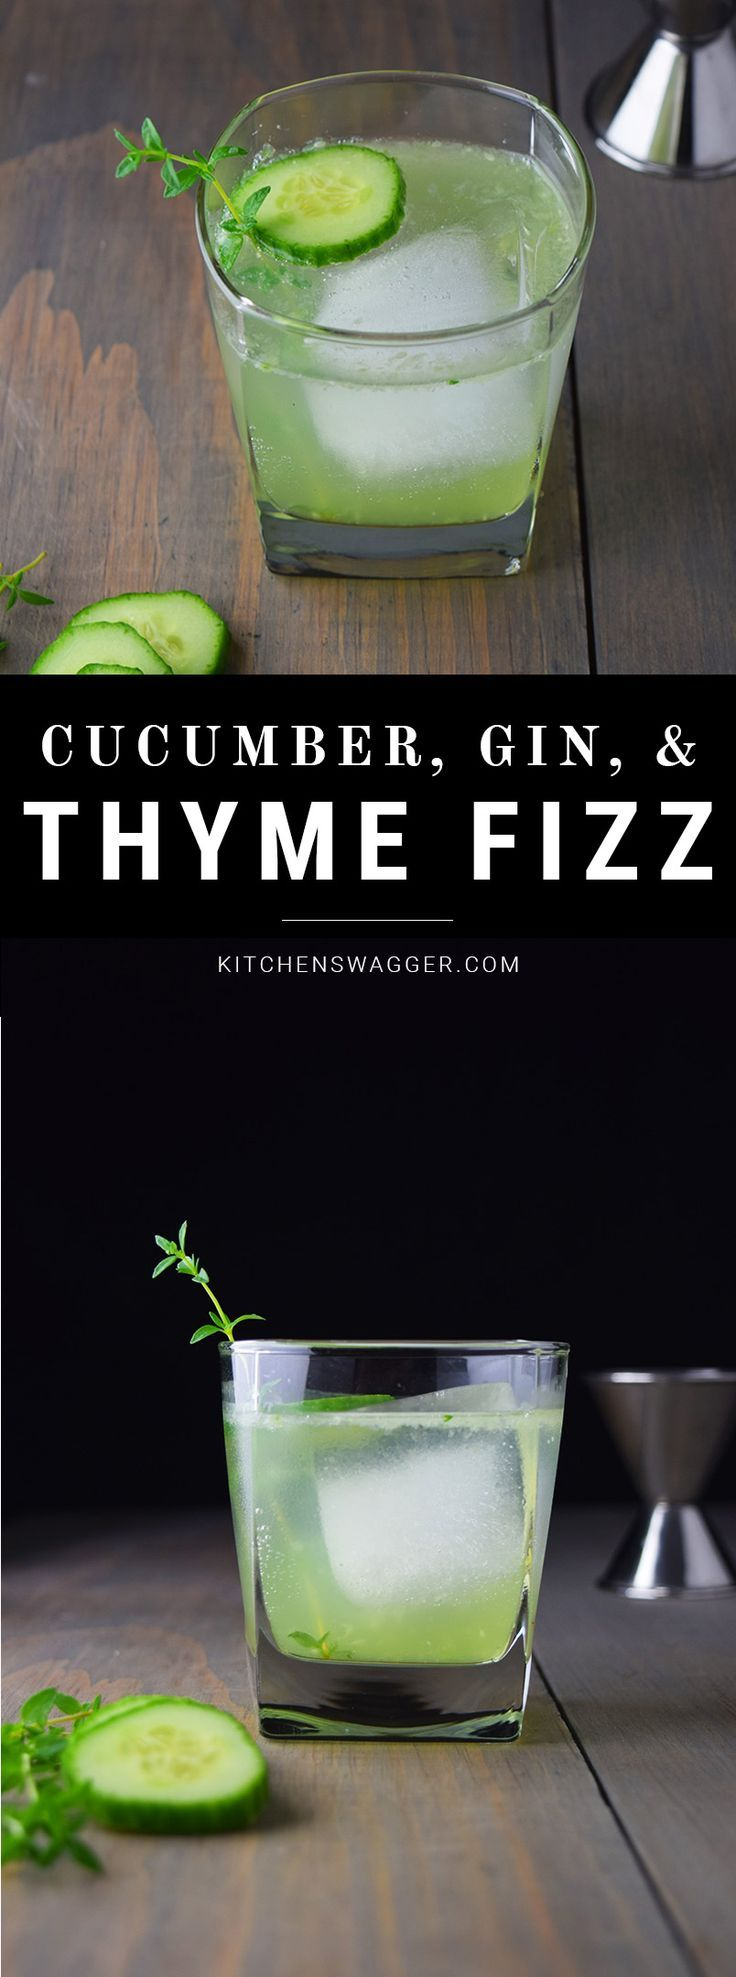 The cucumber, gin, and thyme fizz is a light, slightly sweet, and refreshing cocktail that is perfect for a summer day. Gin, lime, fresh cucumbers, and thyme.